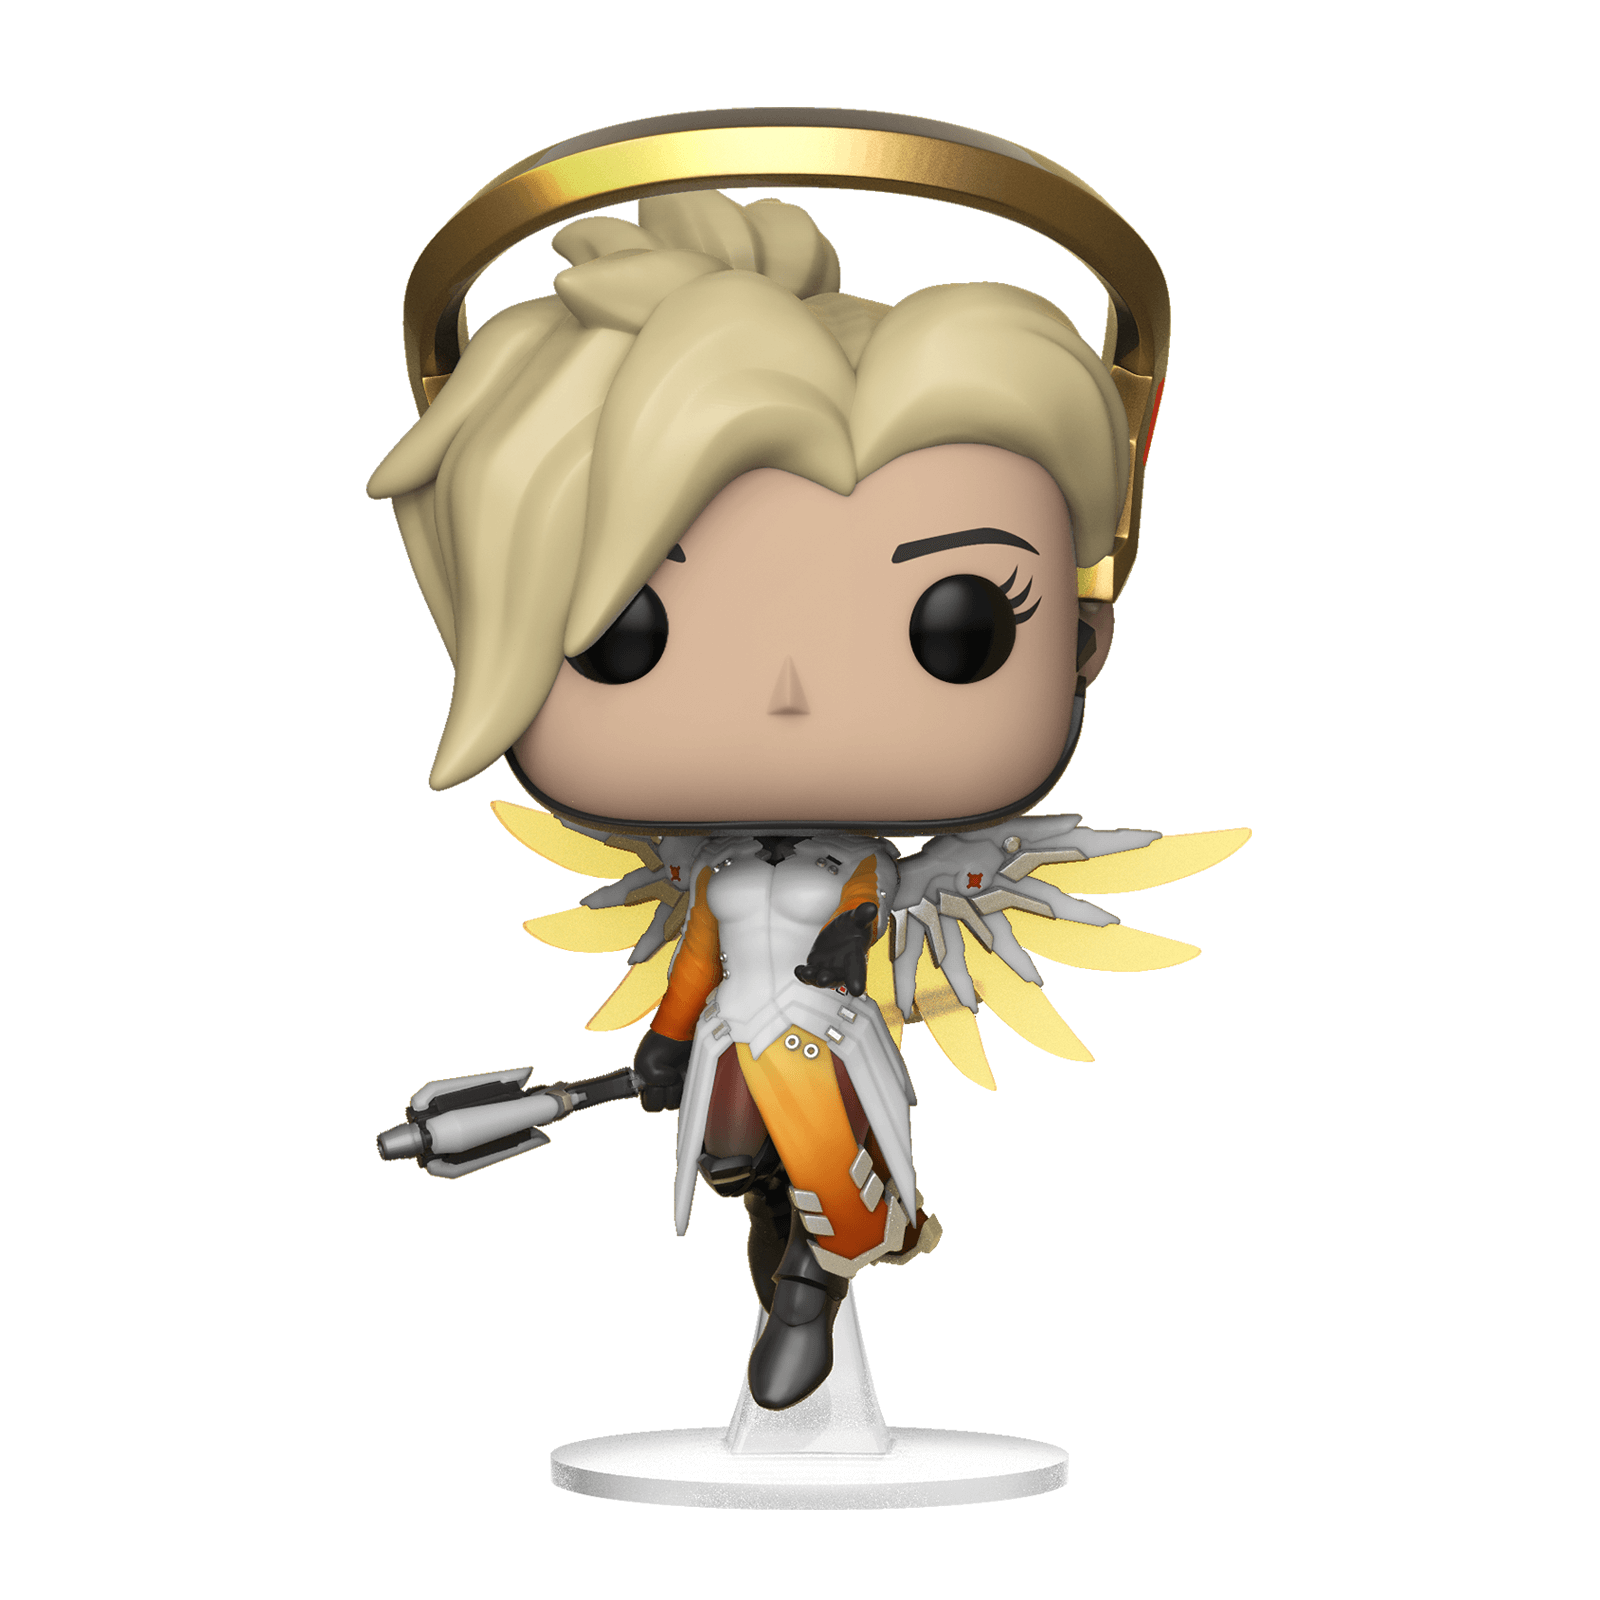 Overwatch Mercy Pop! Vinyl Figure